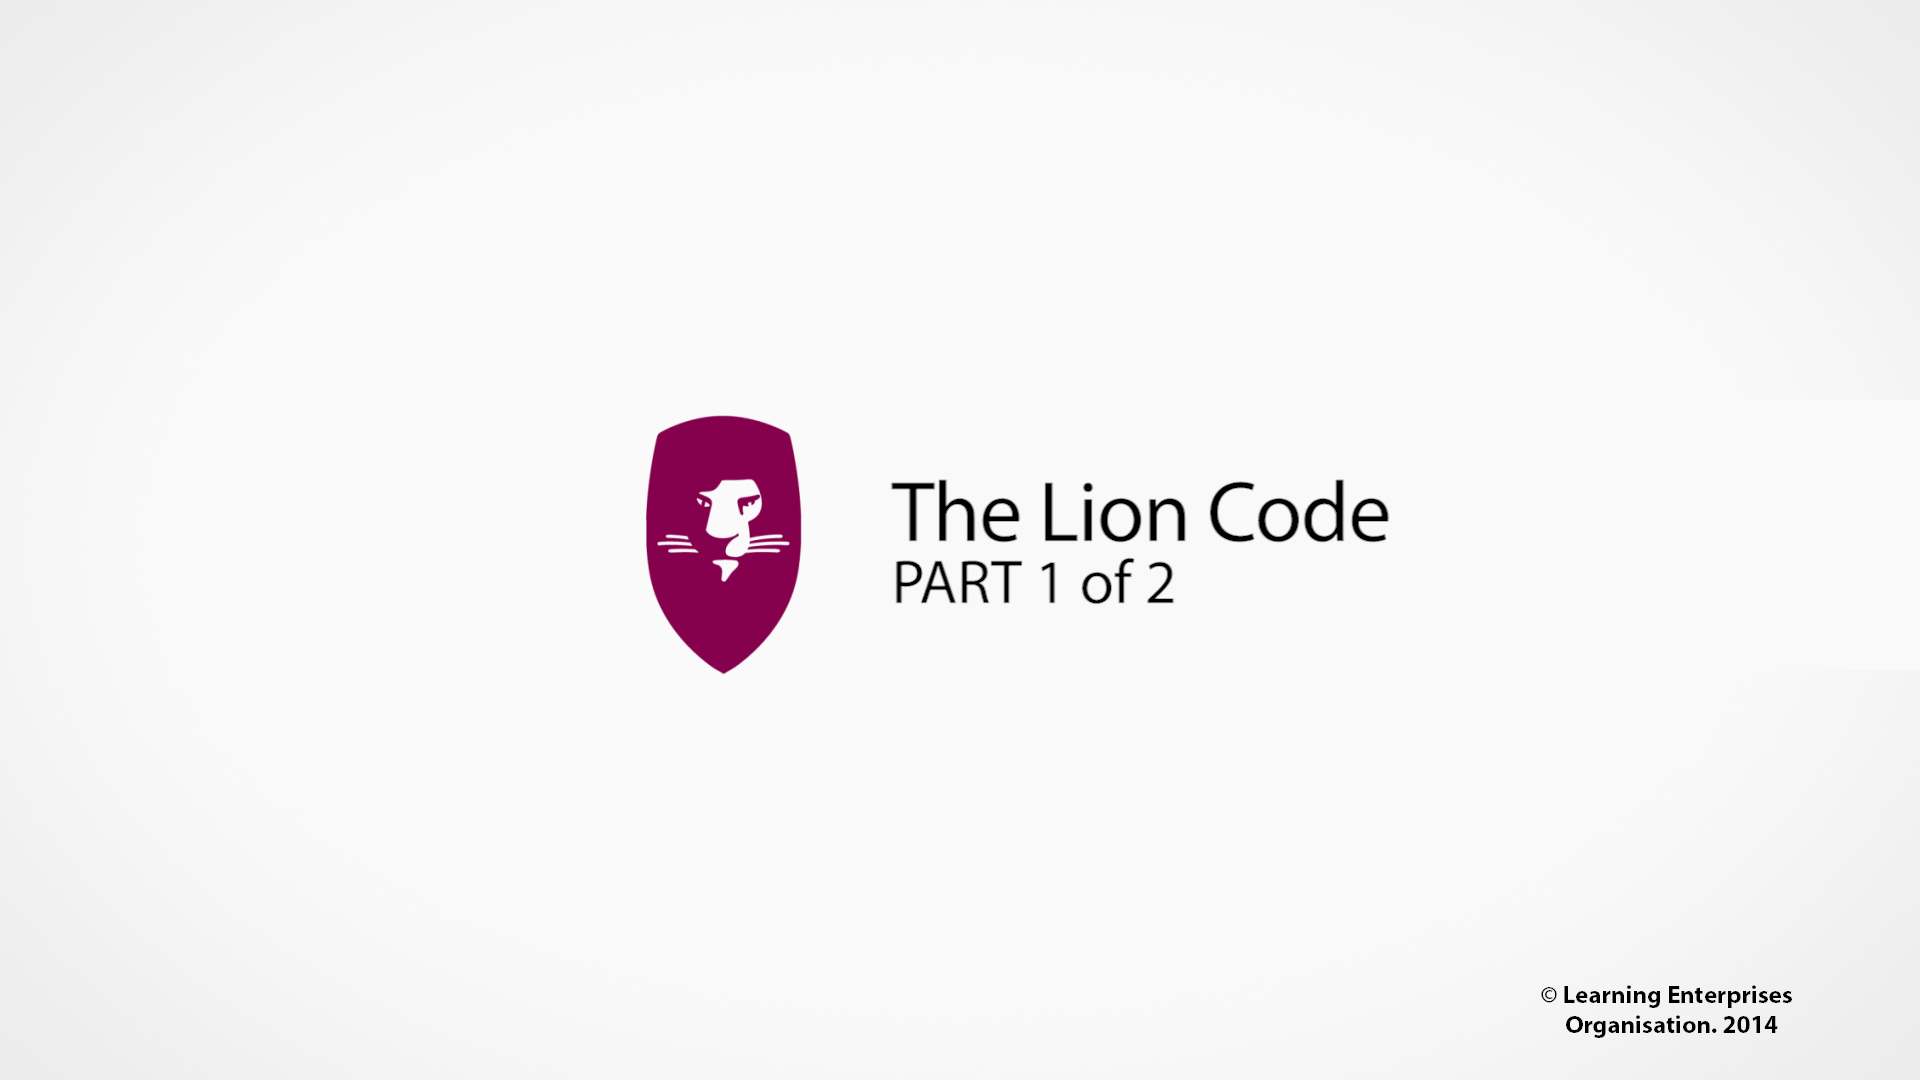 Dan Andersson - The Lion Code (Part 1 of 2) - Toronto 2014